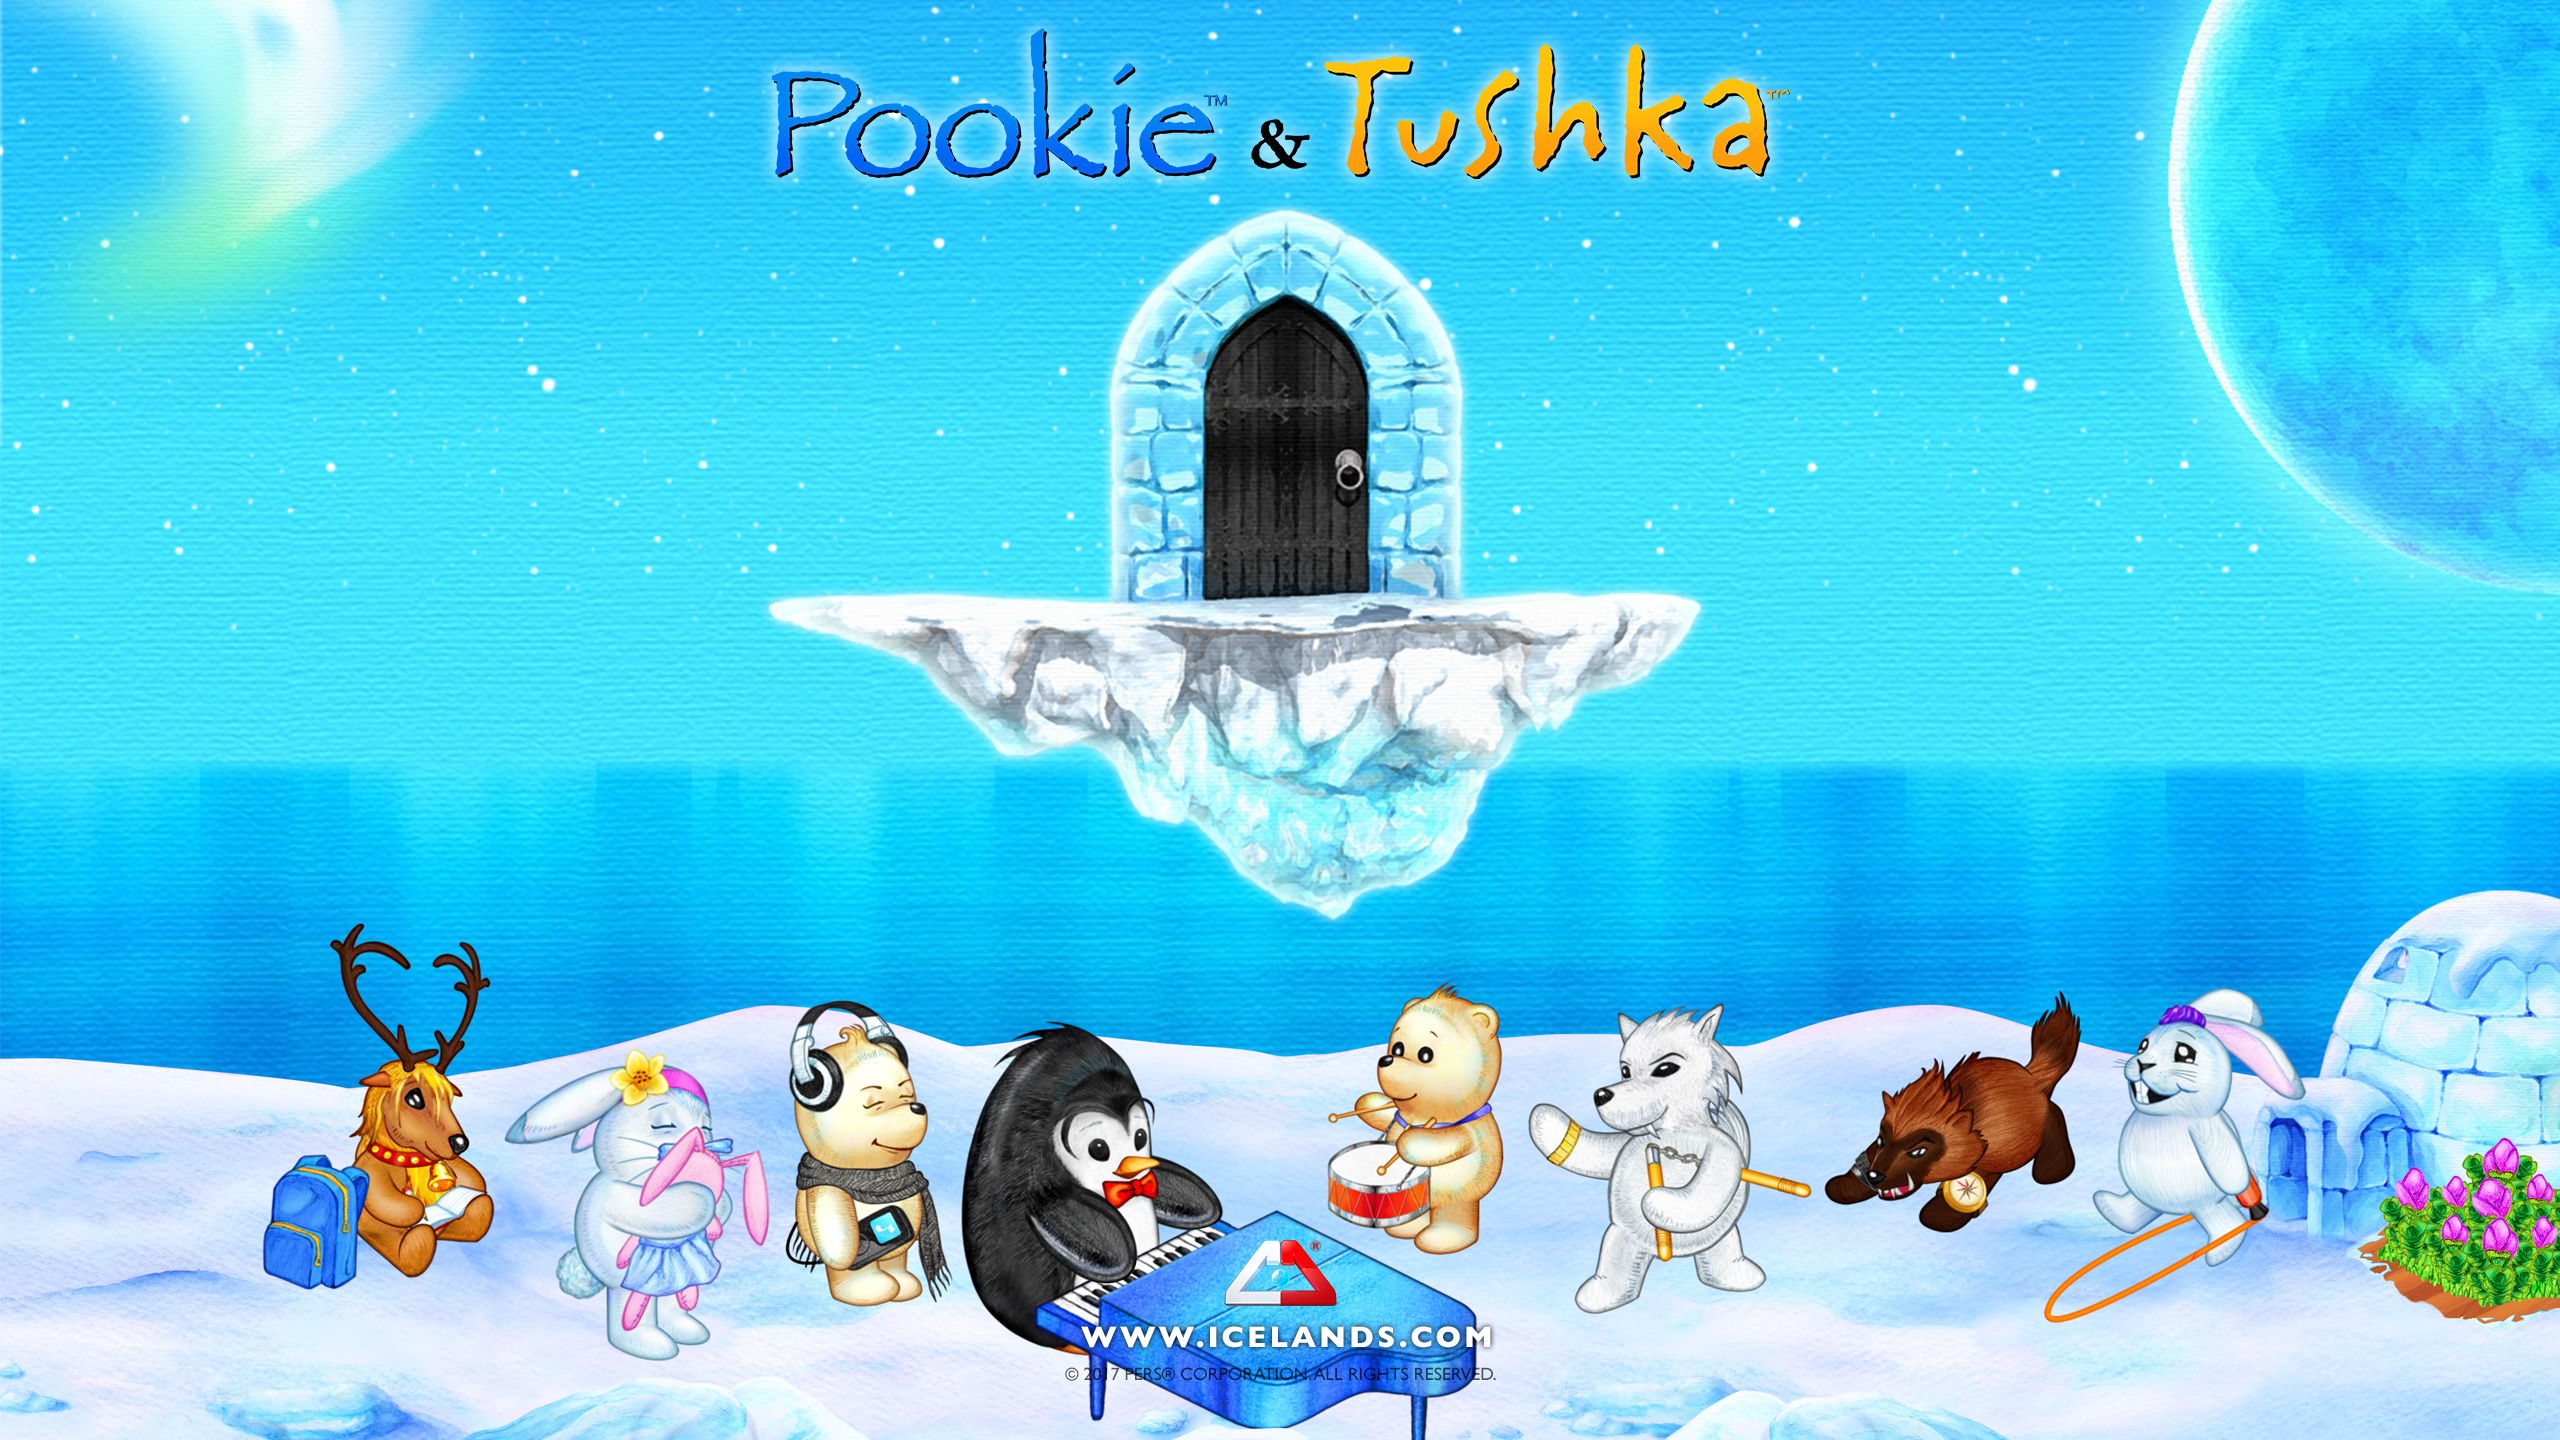 pers home of pookie tushka and the blobbies!